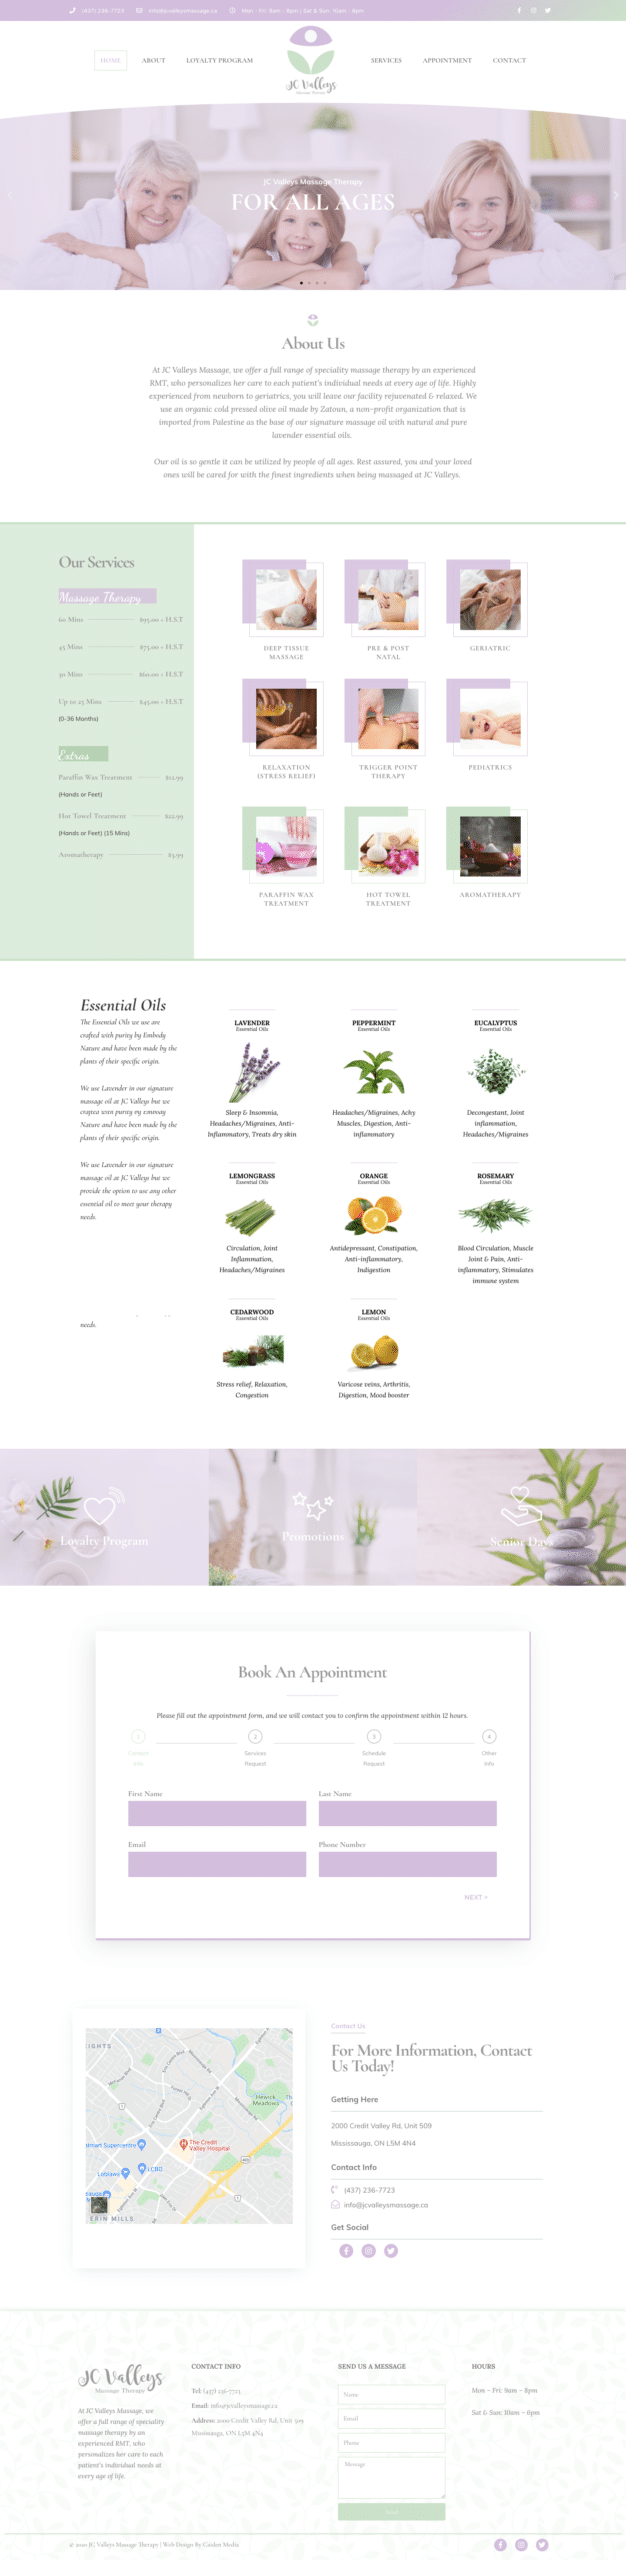 Massage Clinic Web Design